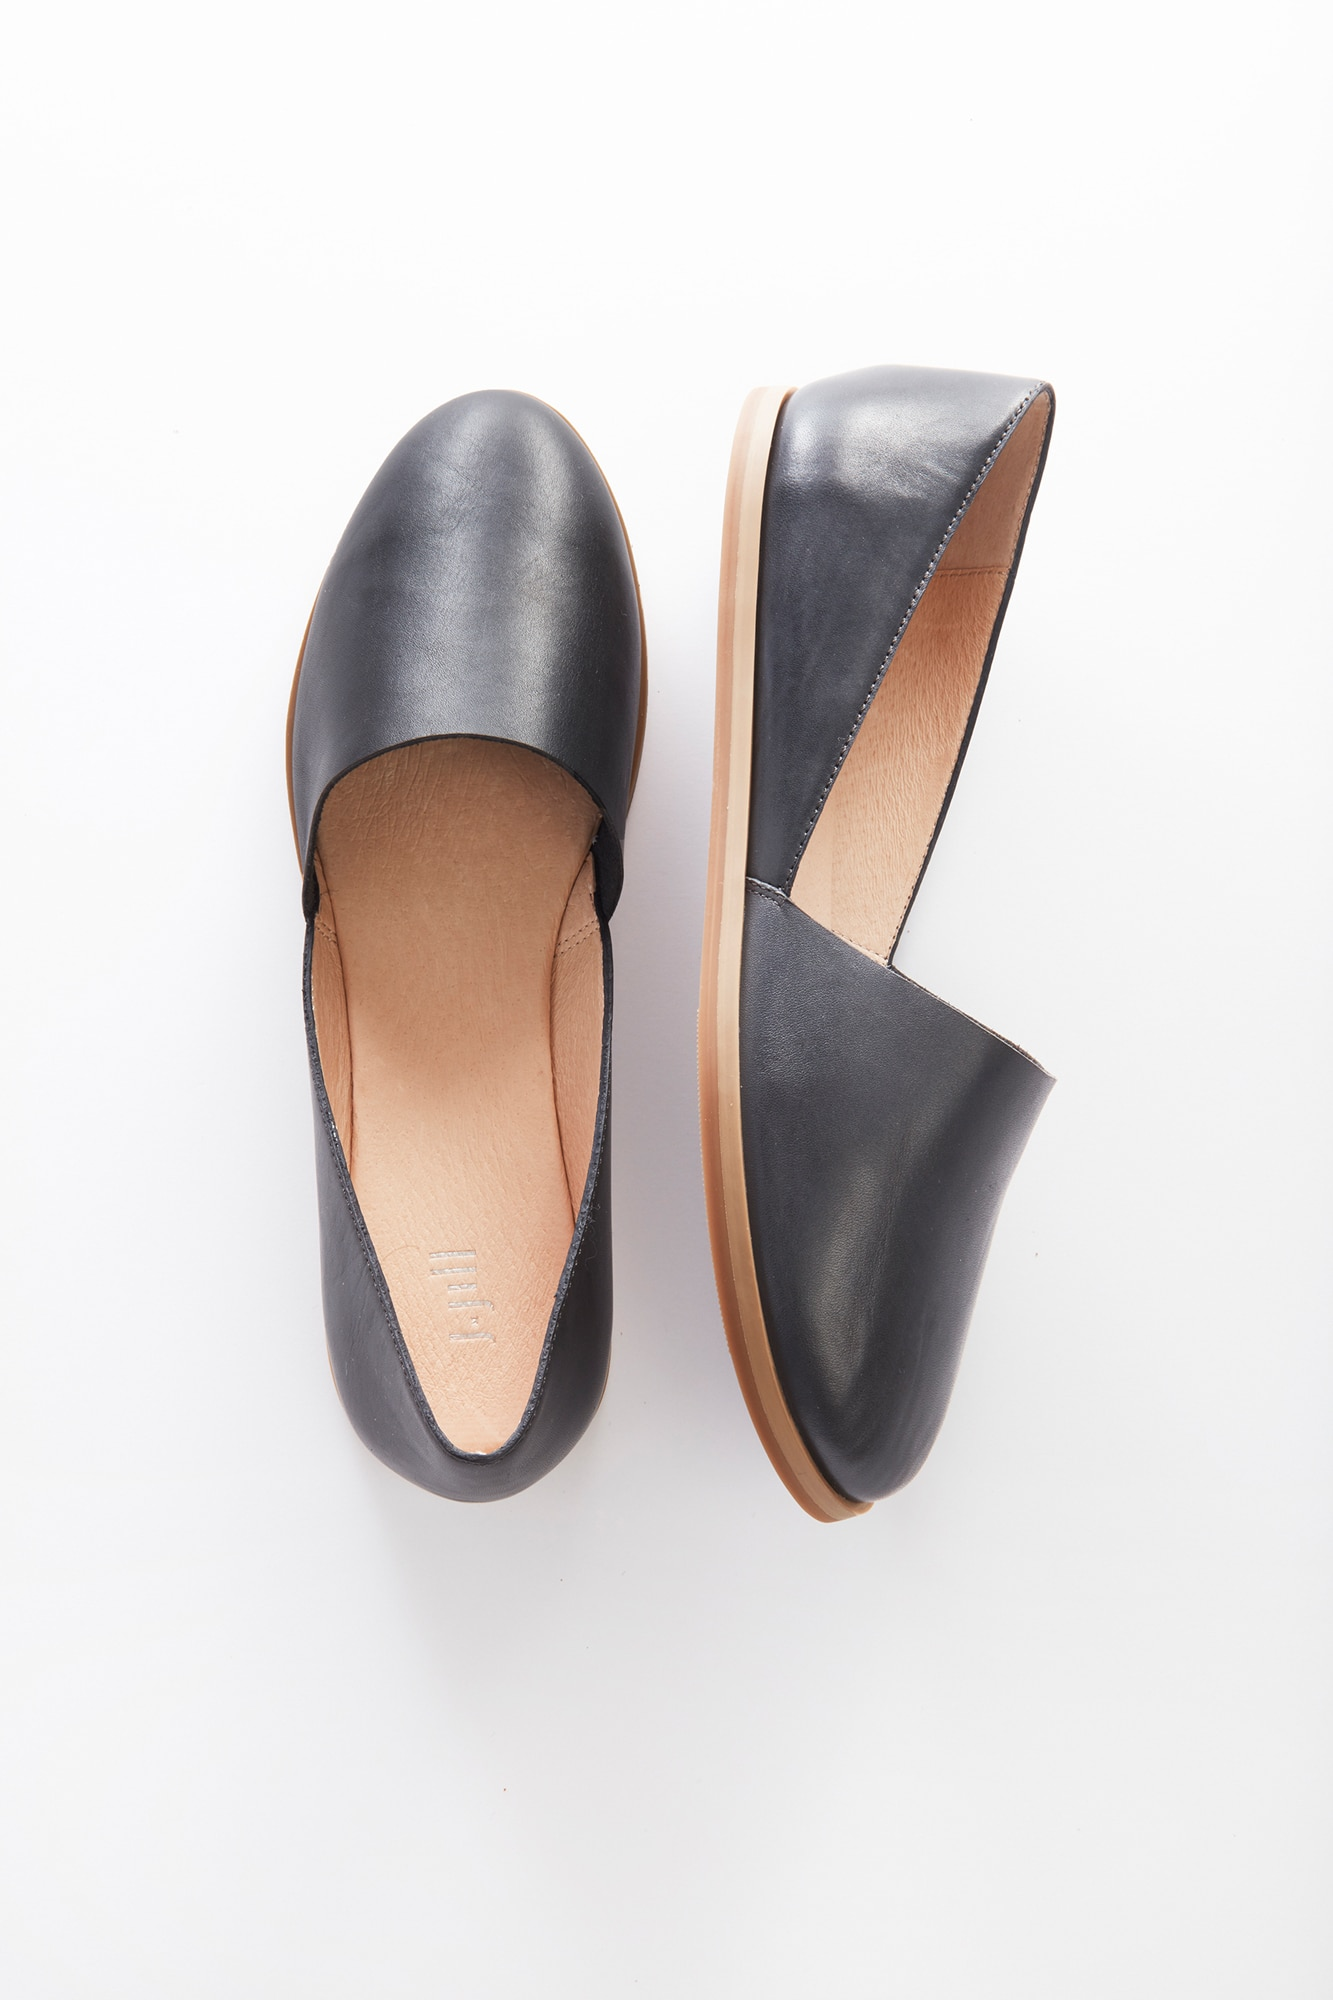 everyday d'Orsay flats